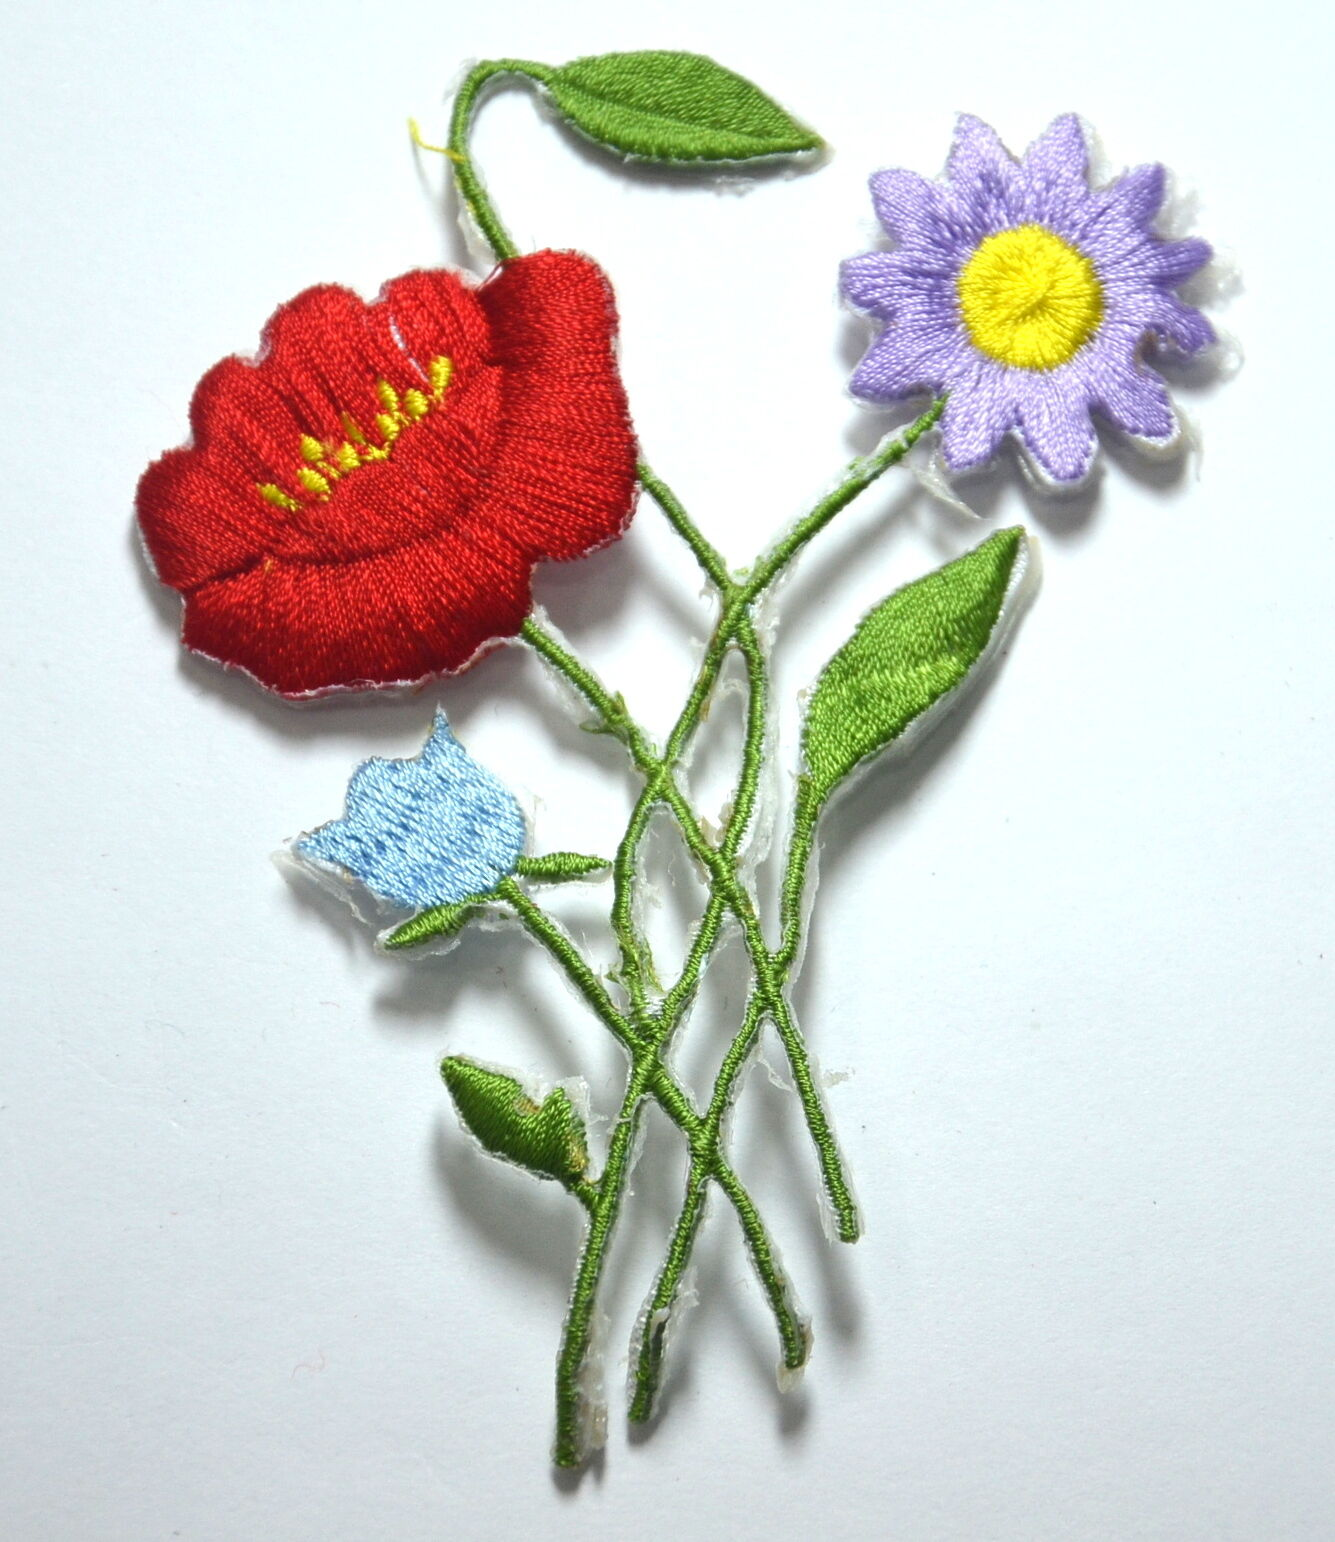 Meadow flowers poppy daisy embroidered sew iron on cloth